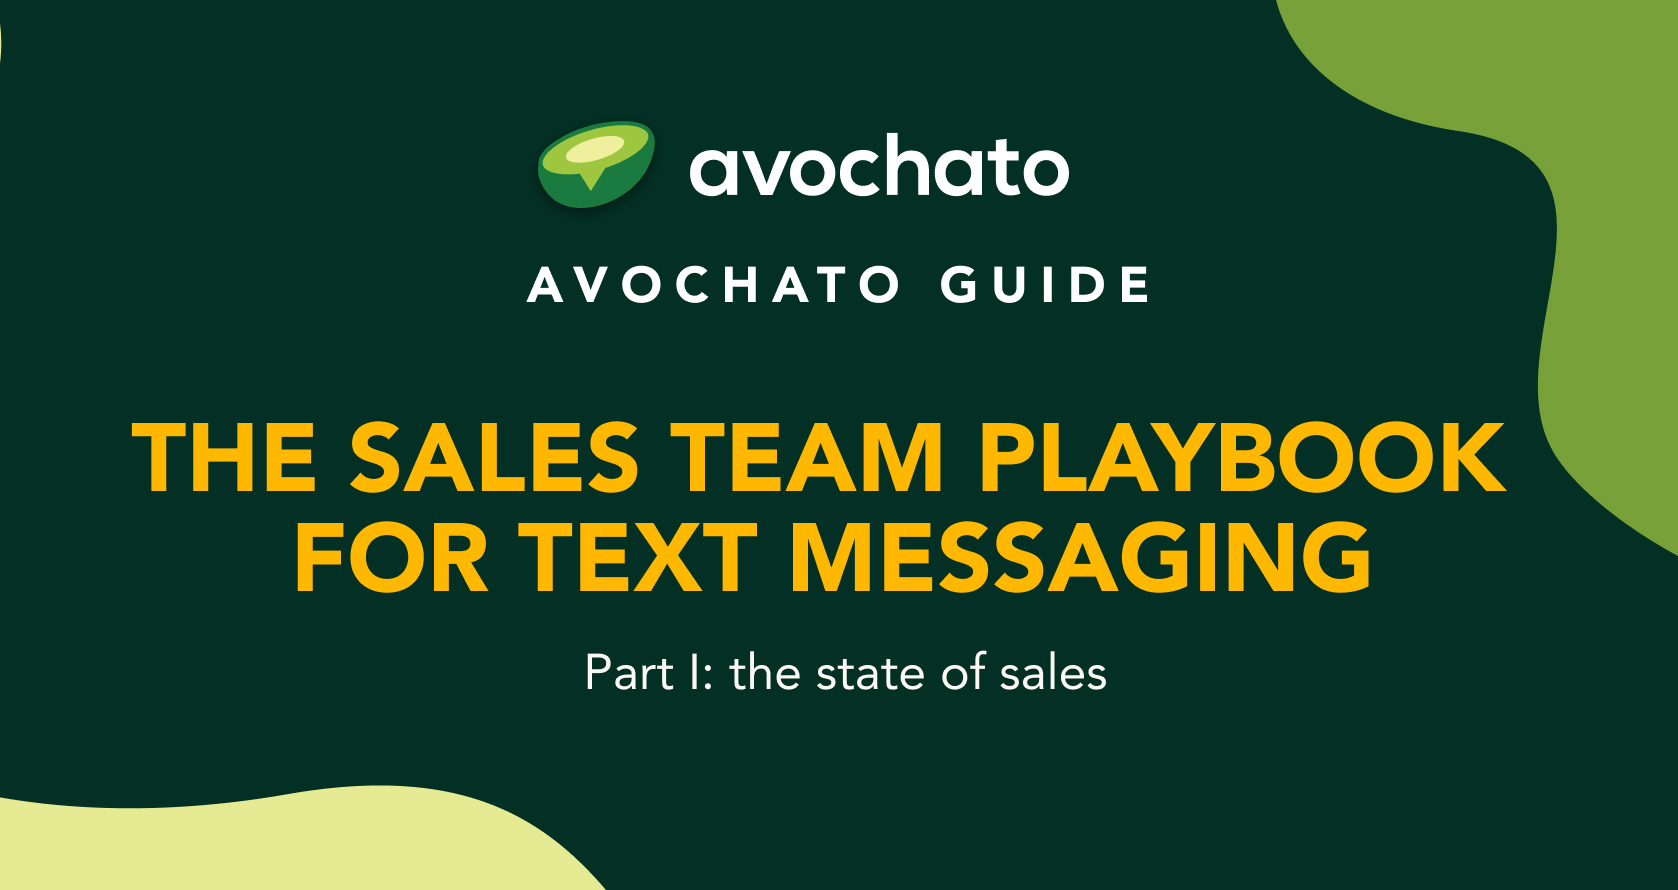 sales sms playbook I